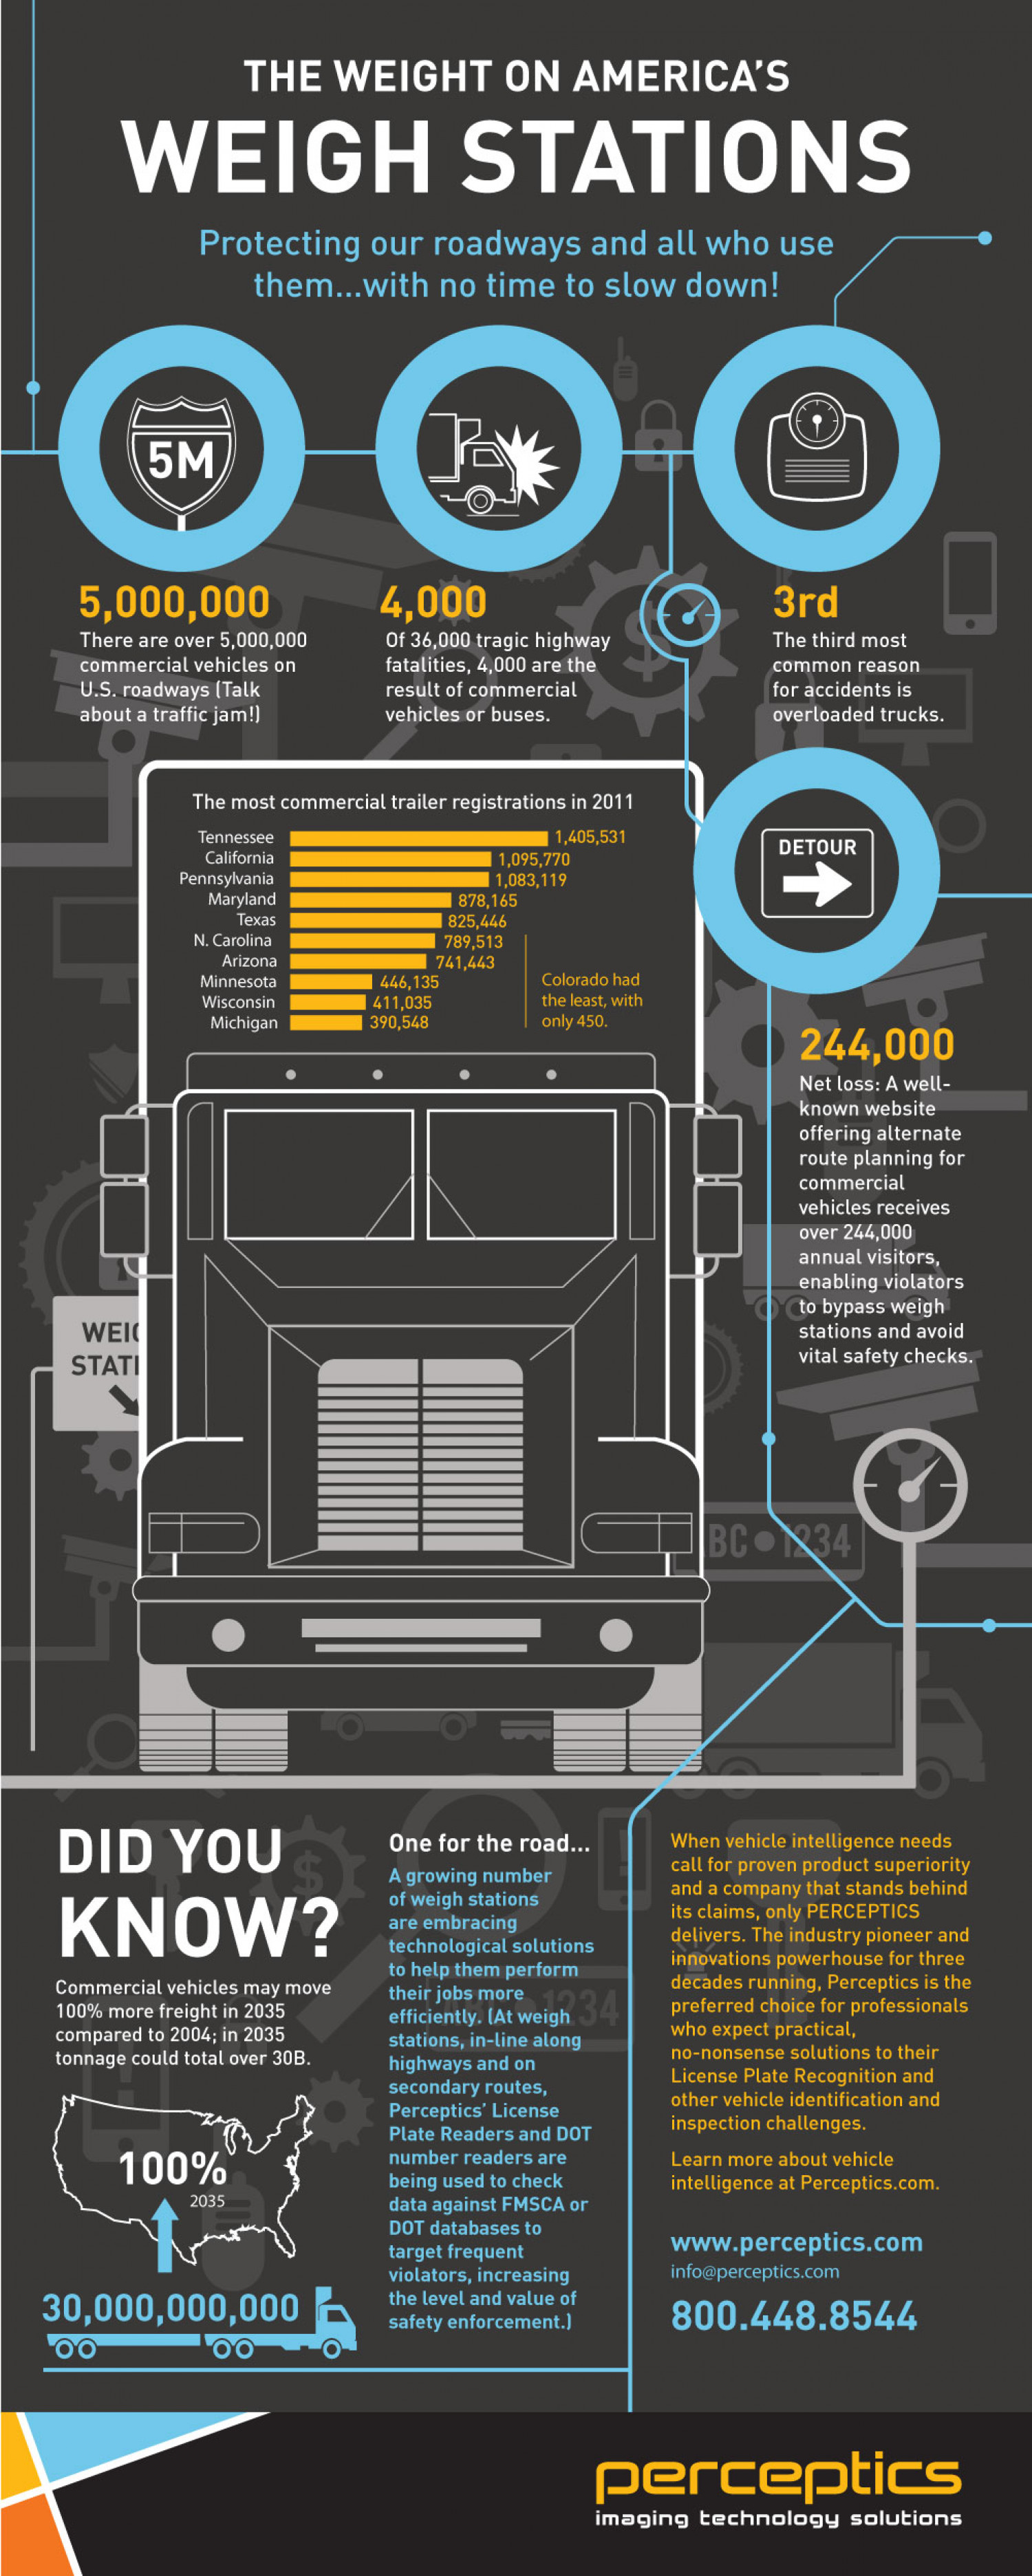 The Weight on America's Weigh Stations Infographic